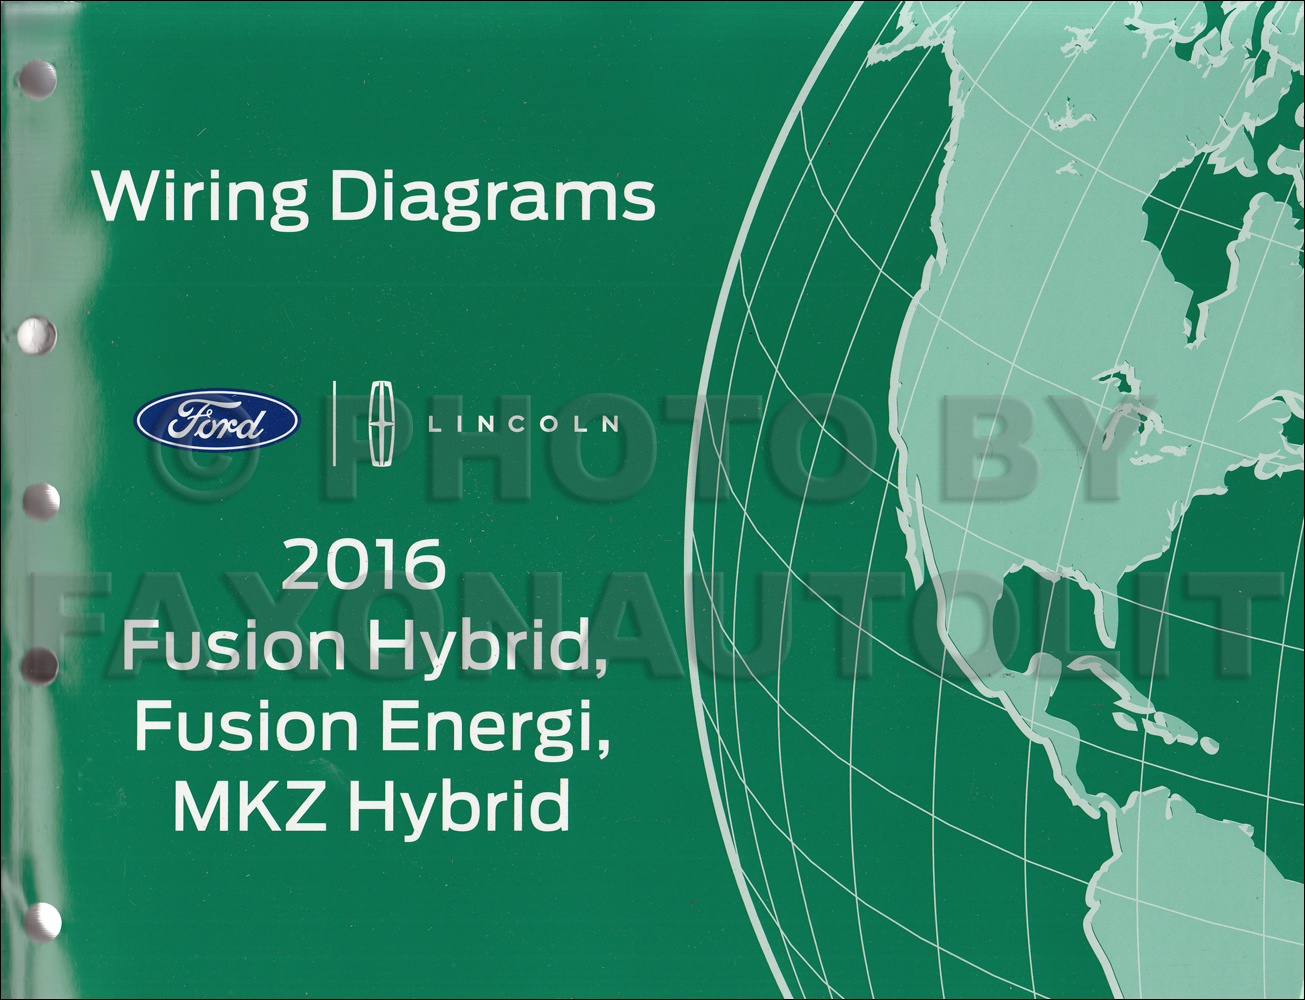 2016FordFusionHybridOWD 2016 ford fusion energi hybrid lincoln mkz hybrid wiring diagram Ford Alternator Wiring Diagram at fashall.co